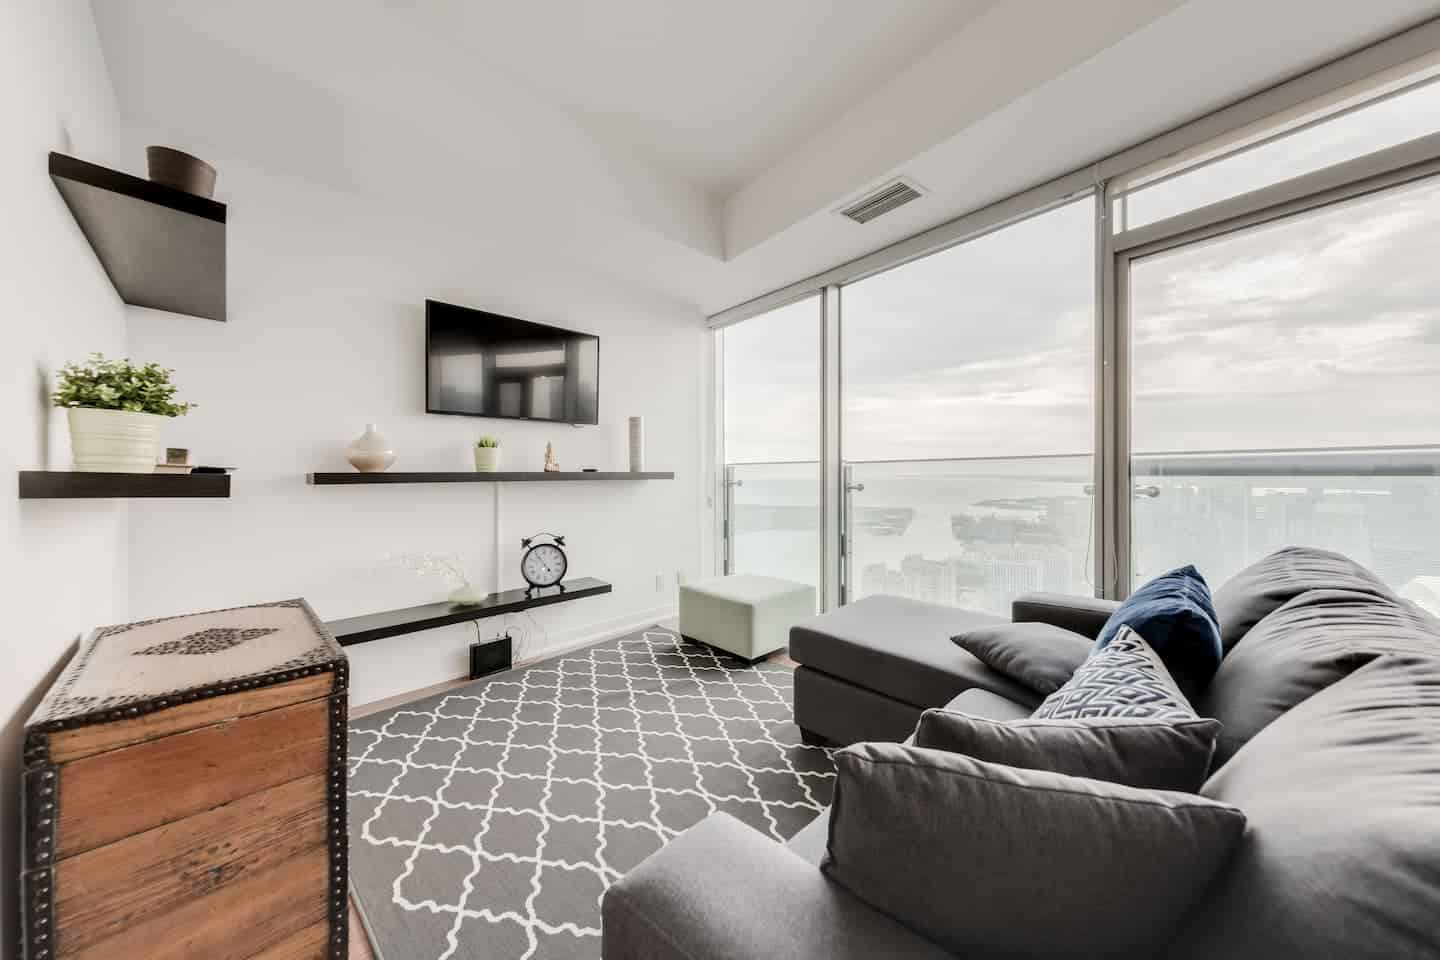 Image of Airbnb rental in Toronto, Ontario